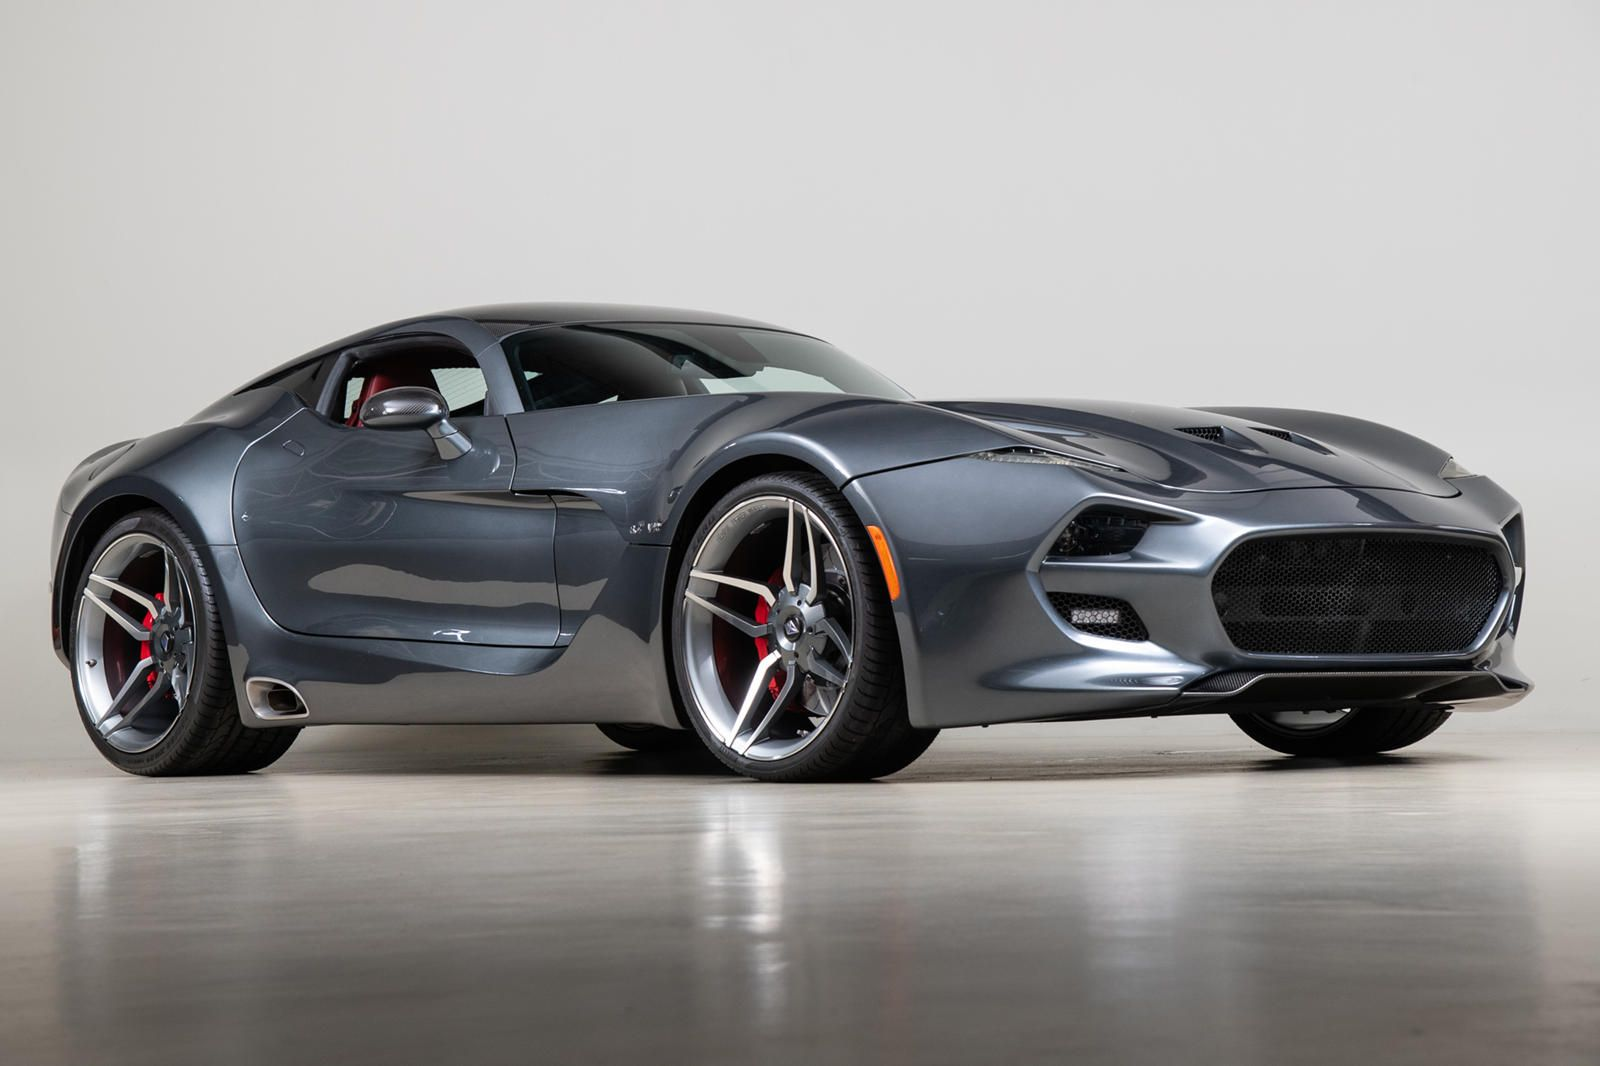 You Can Buy Henrik Fisker S 745 Hp Dodge Viper Based Supercar 50 Units Were Planned Supposedly Only Five Were Built Super Cars Dodge Viper Henrik Fisker